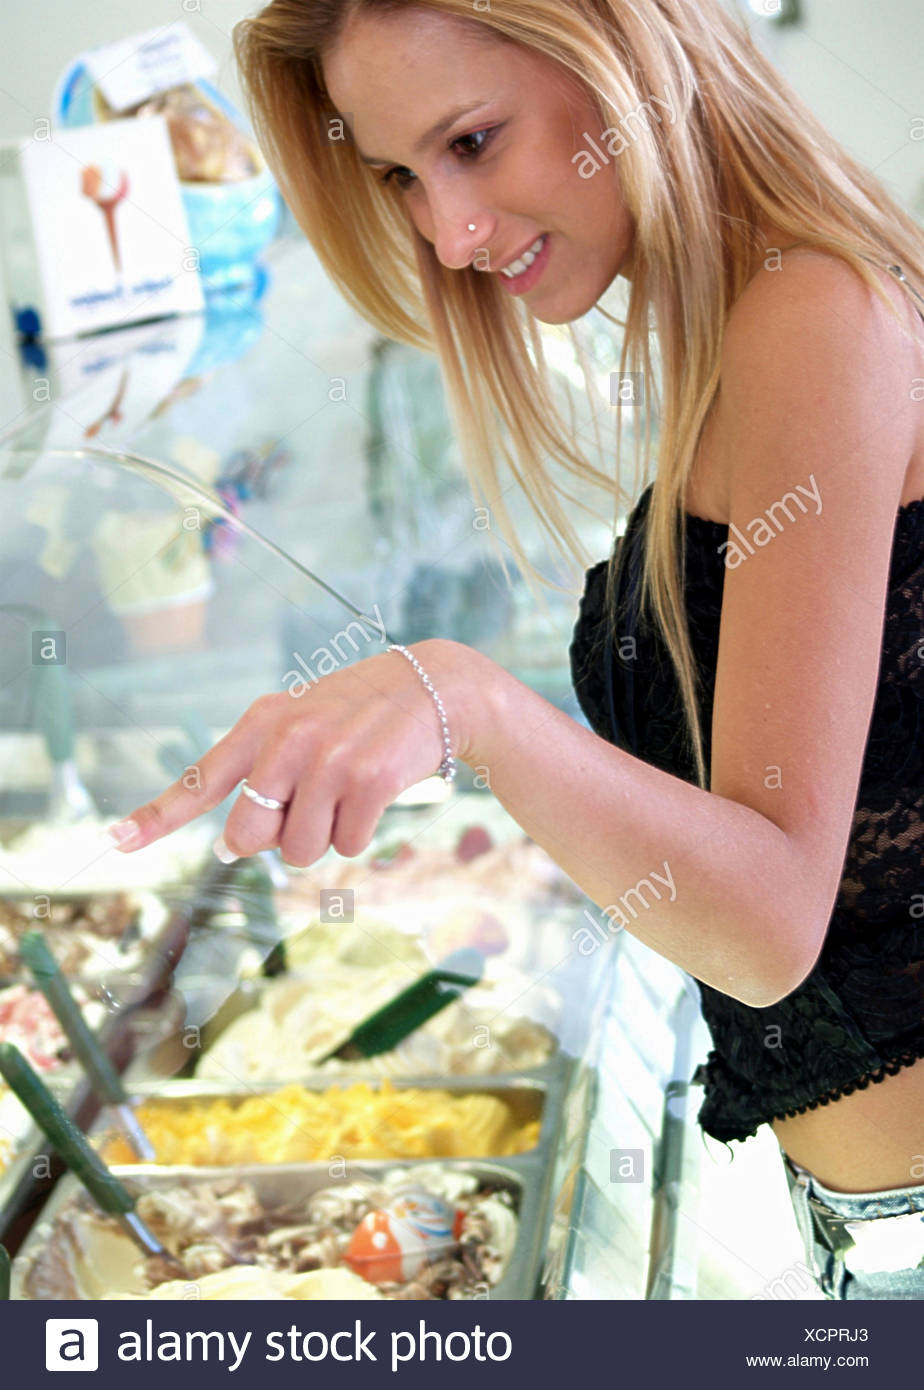 blond young woman in an ice cream parlor chosing the sorts with a smile Stock Photo